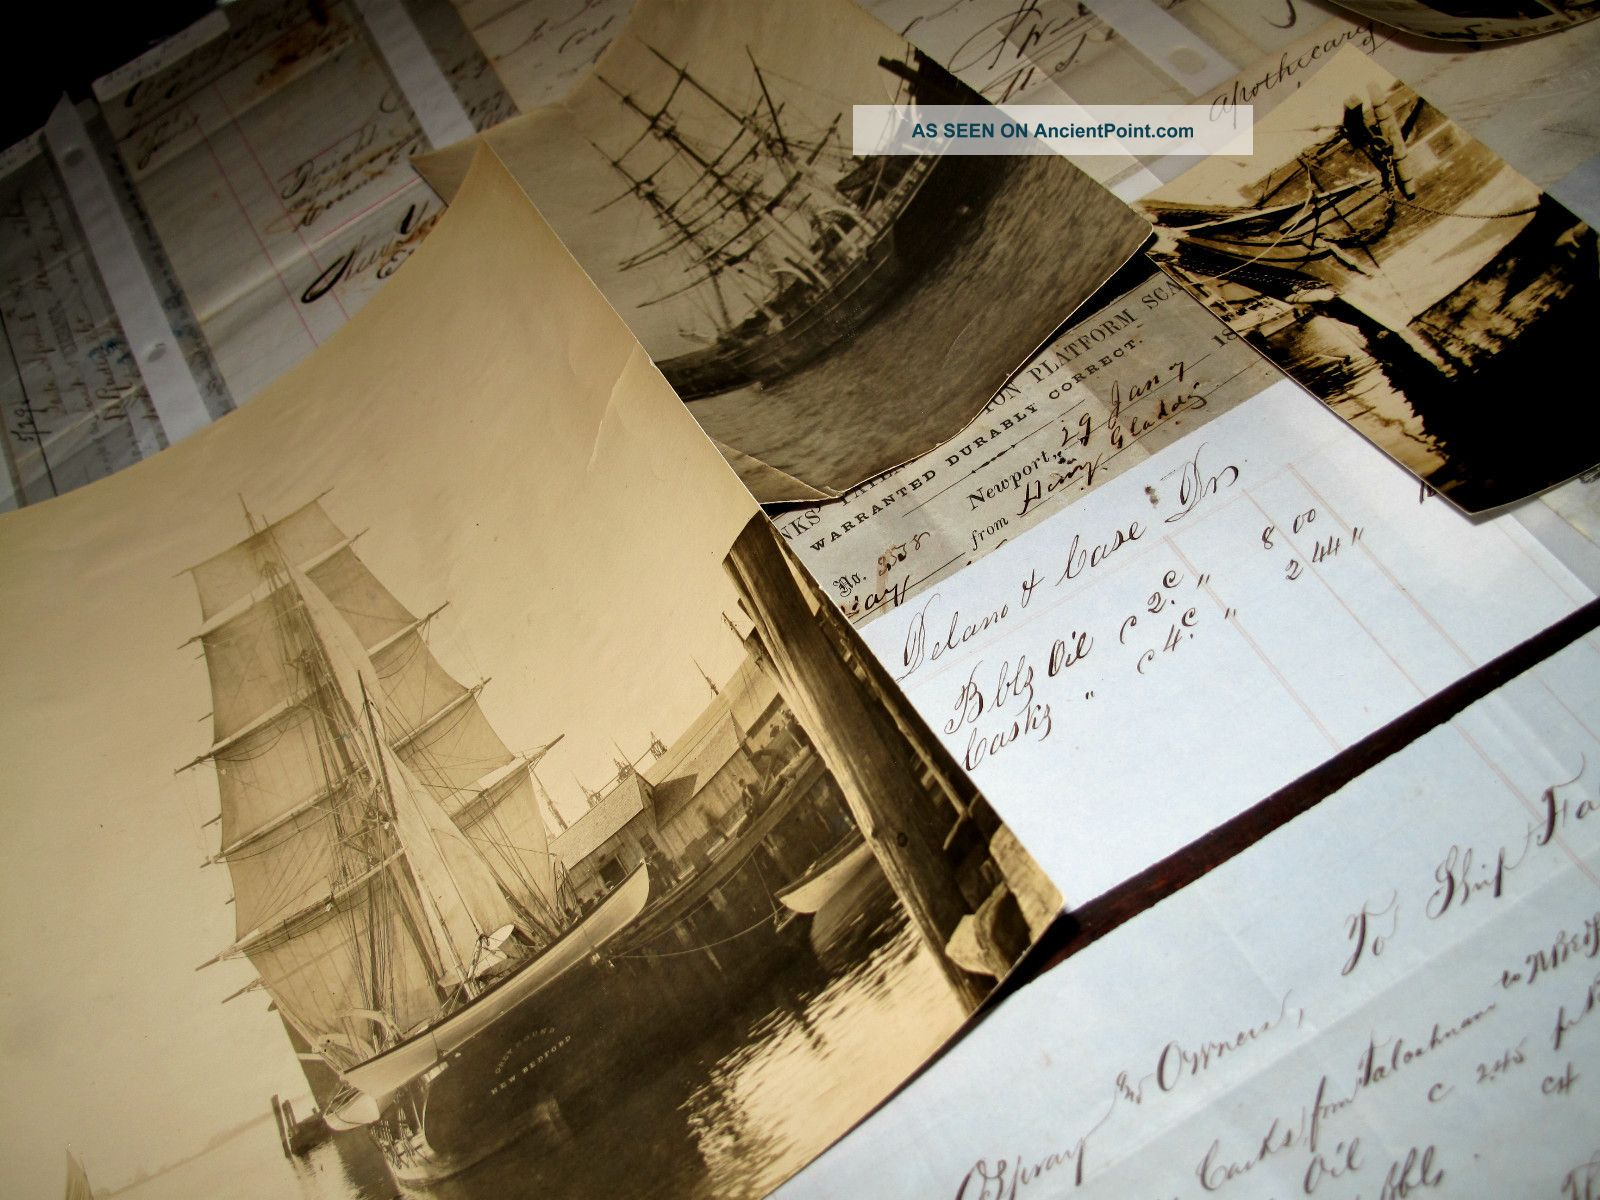 1850s Whaling Archive Documents Photos New Bedford Maritime Nautical Captstanton American photo